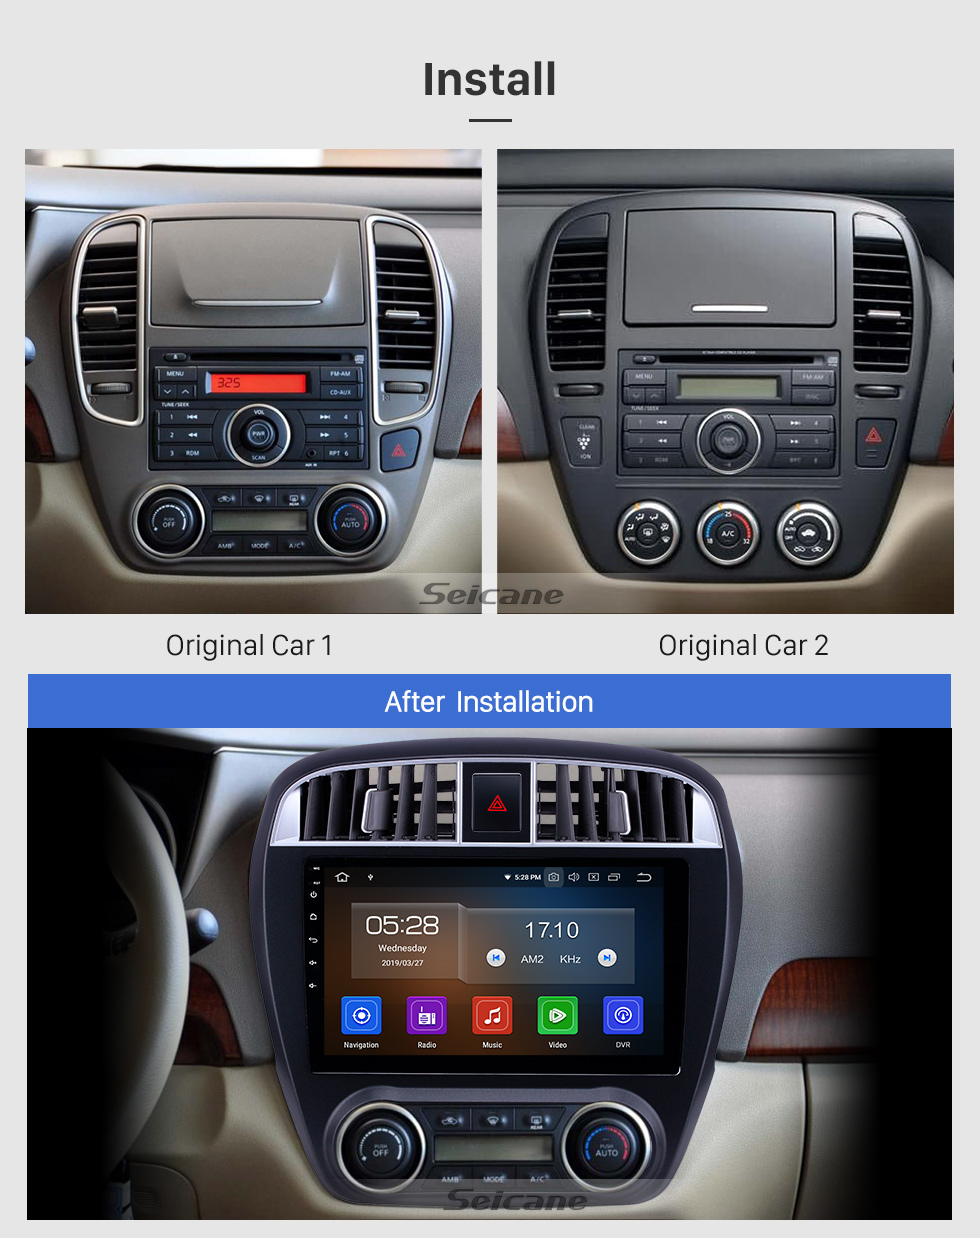 Seicane 2009 Nissan Sylphy Android 9.0 9 inch GPS Navigation Radio Bluetooth AUX HD Touchscreen USB Carplay support TPMS DVR Digital TV Backup camera